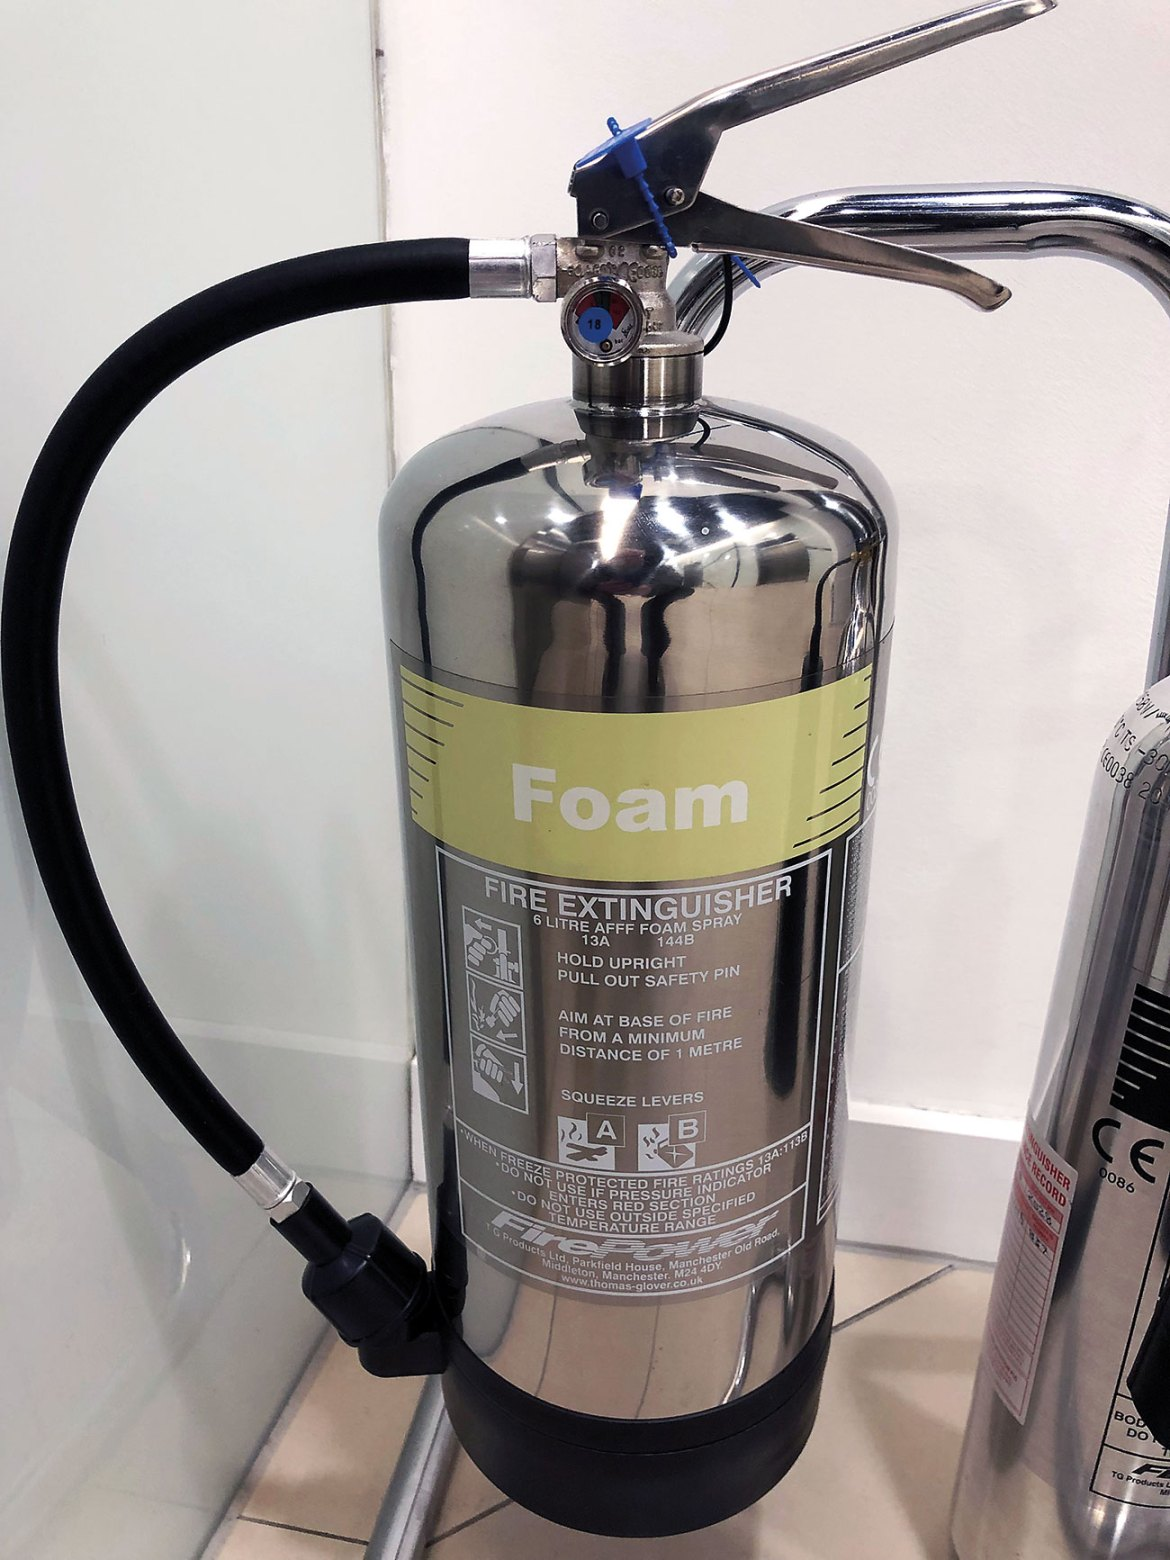 Typical office AFFF fire extinguisher containing PFAS.